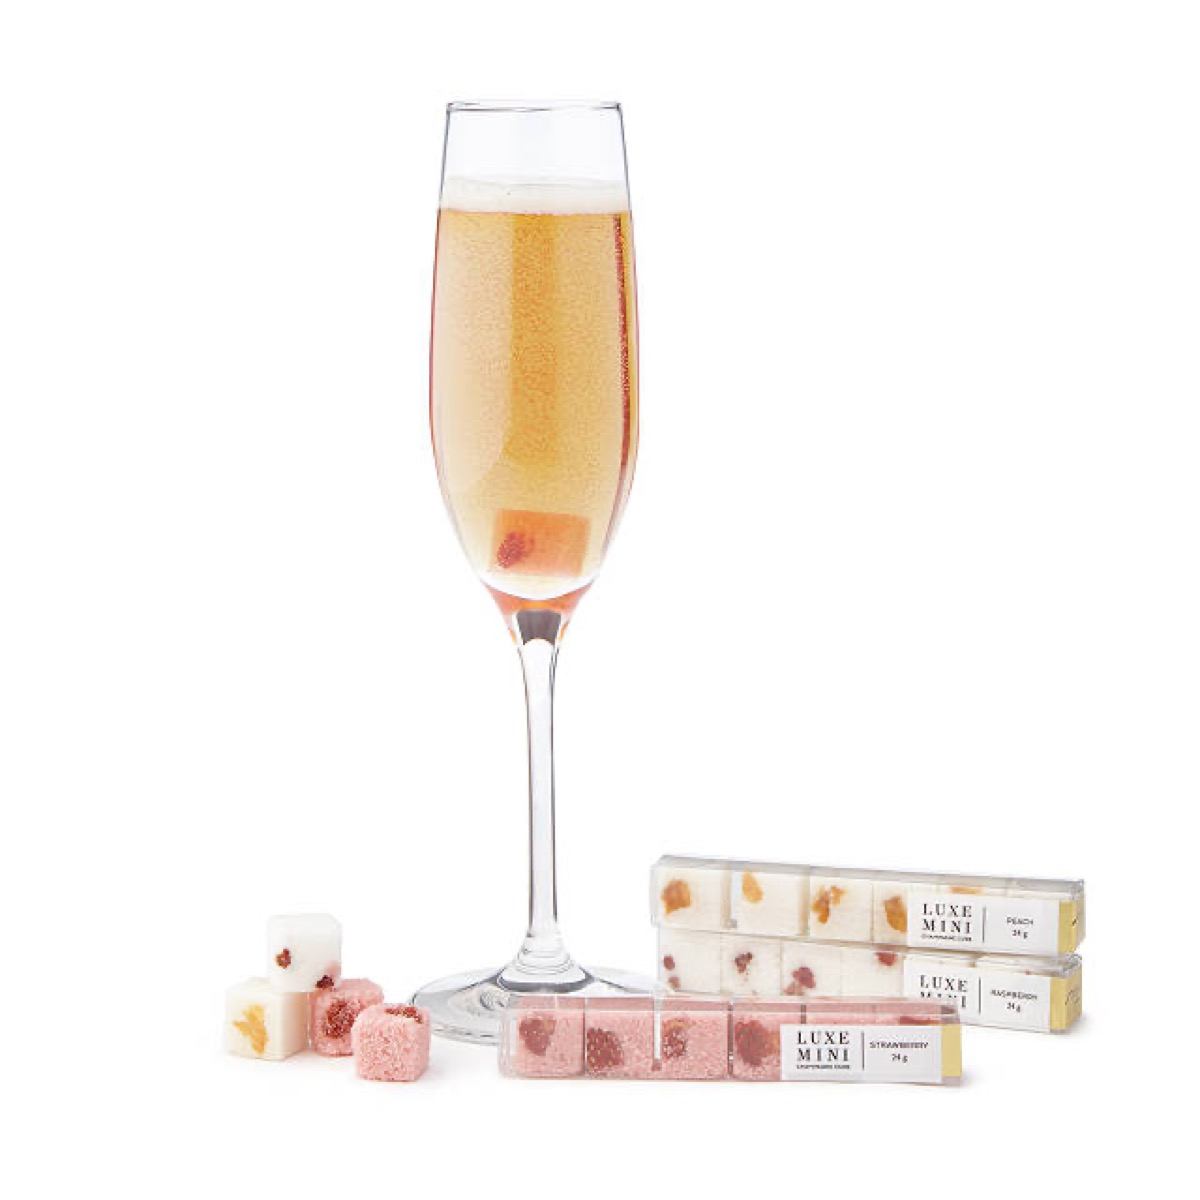 champagne glass next to pink sugar cubes